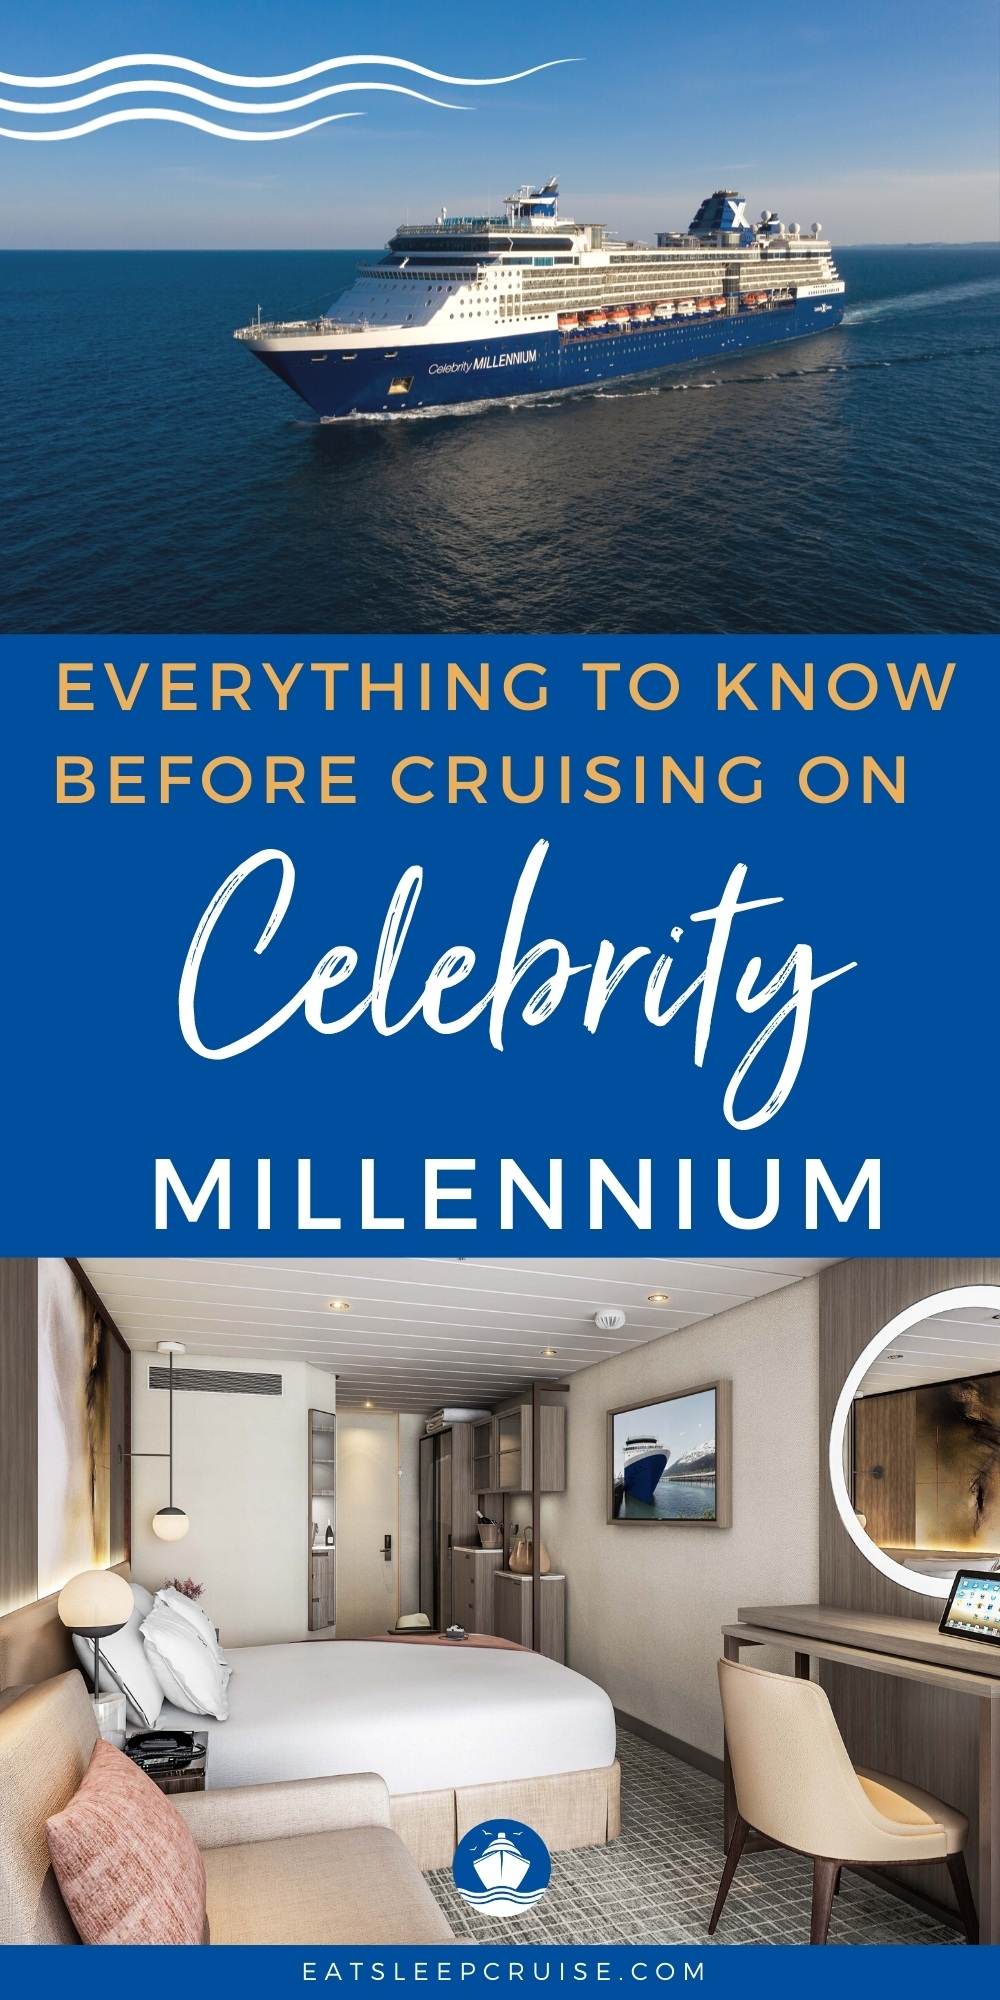 Everything You Need to Know Before Cruising on Celebrity Millennium This Summer